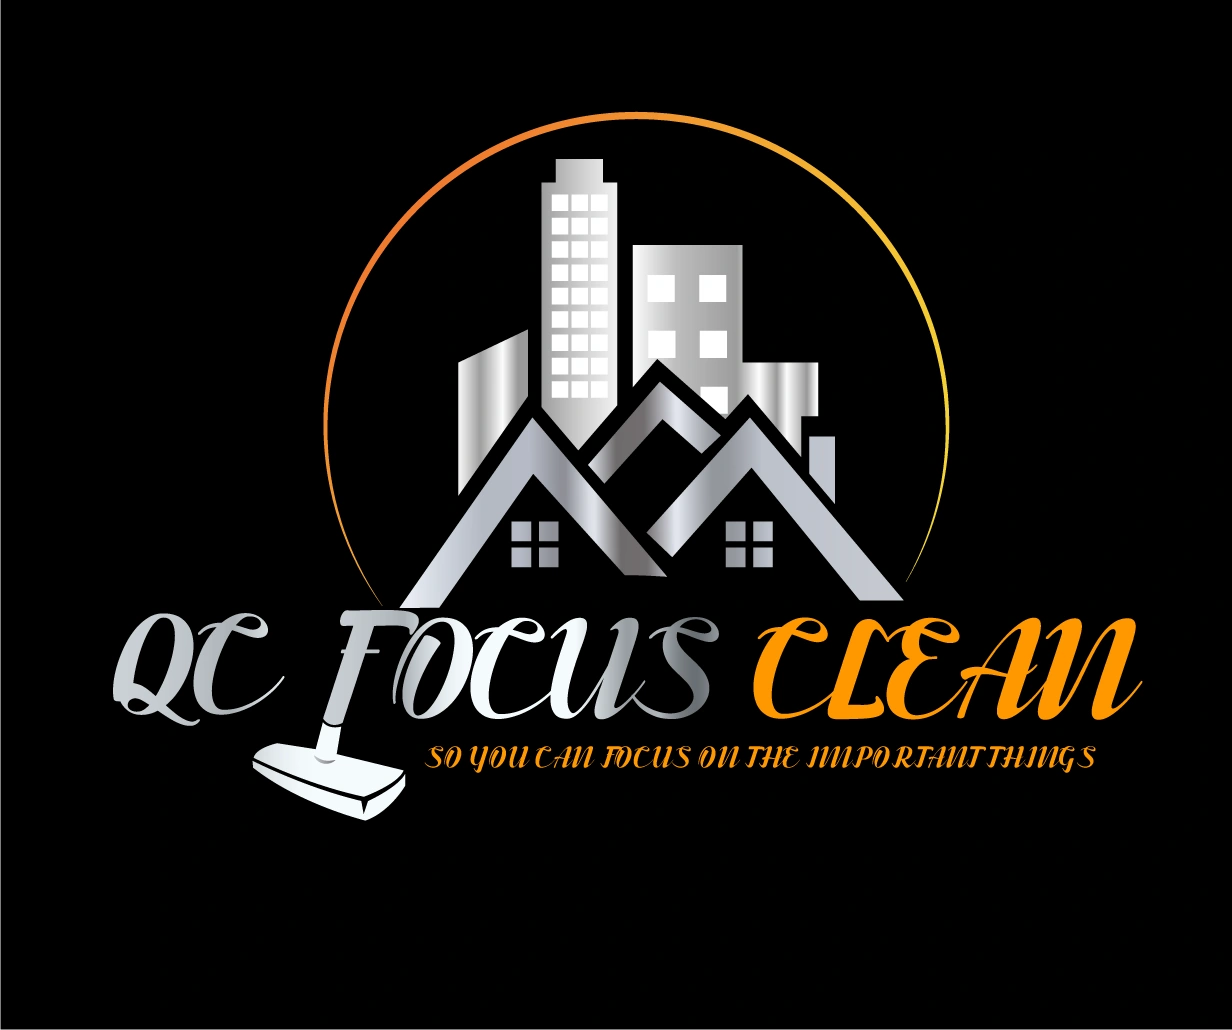 Maid Service Home Cleaning Amp Office Cleaning Qc Focus Clean